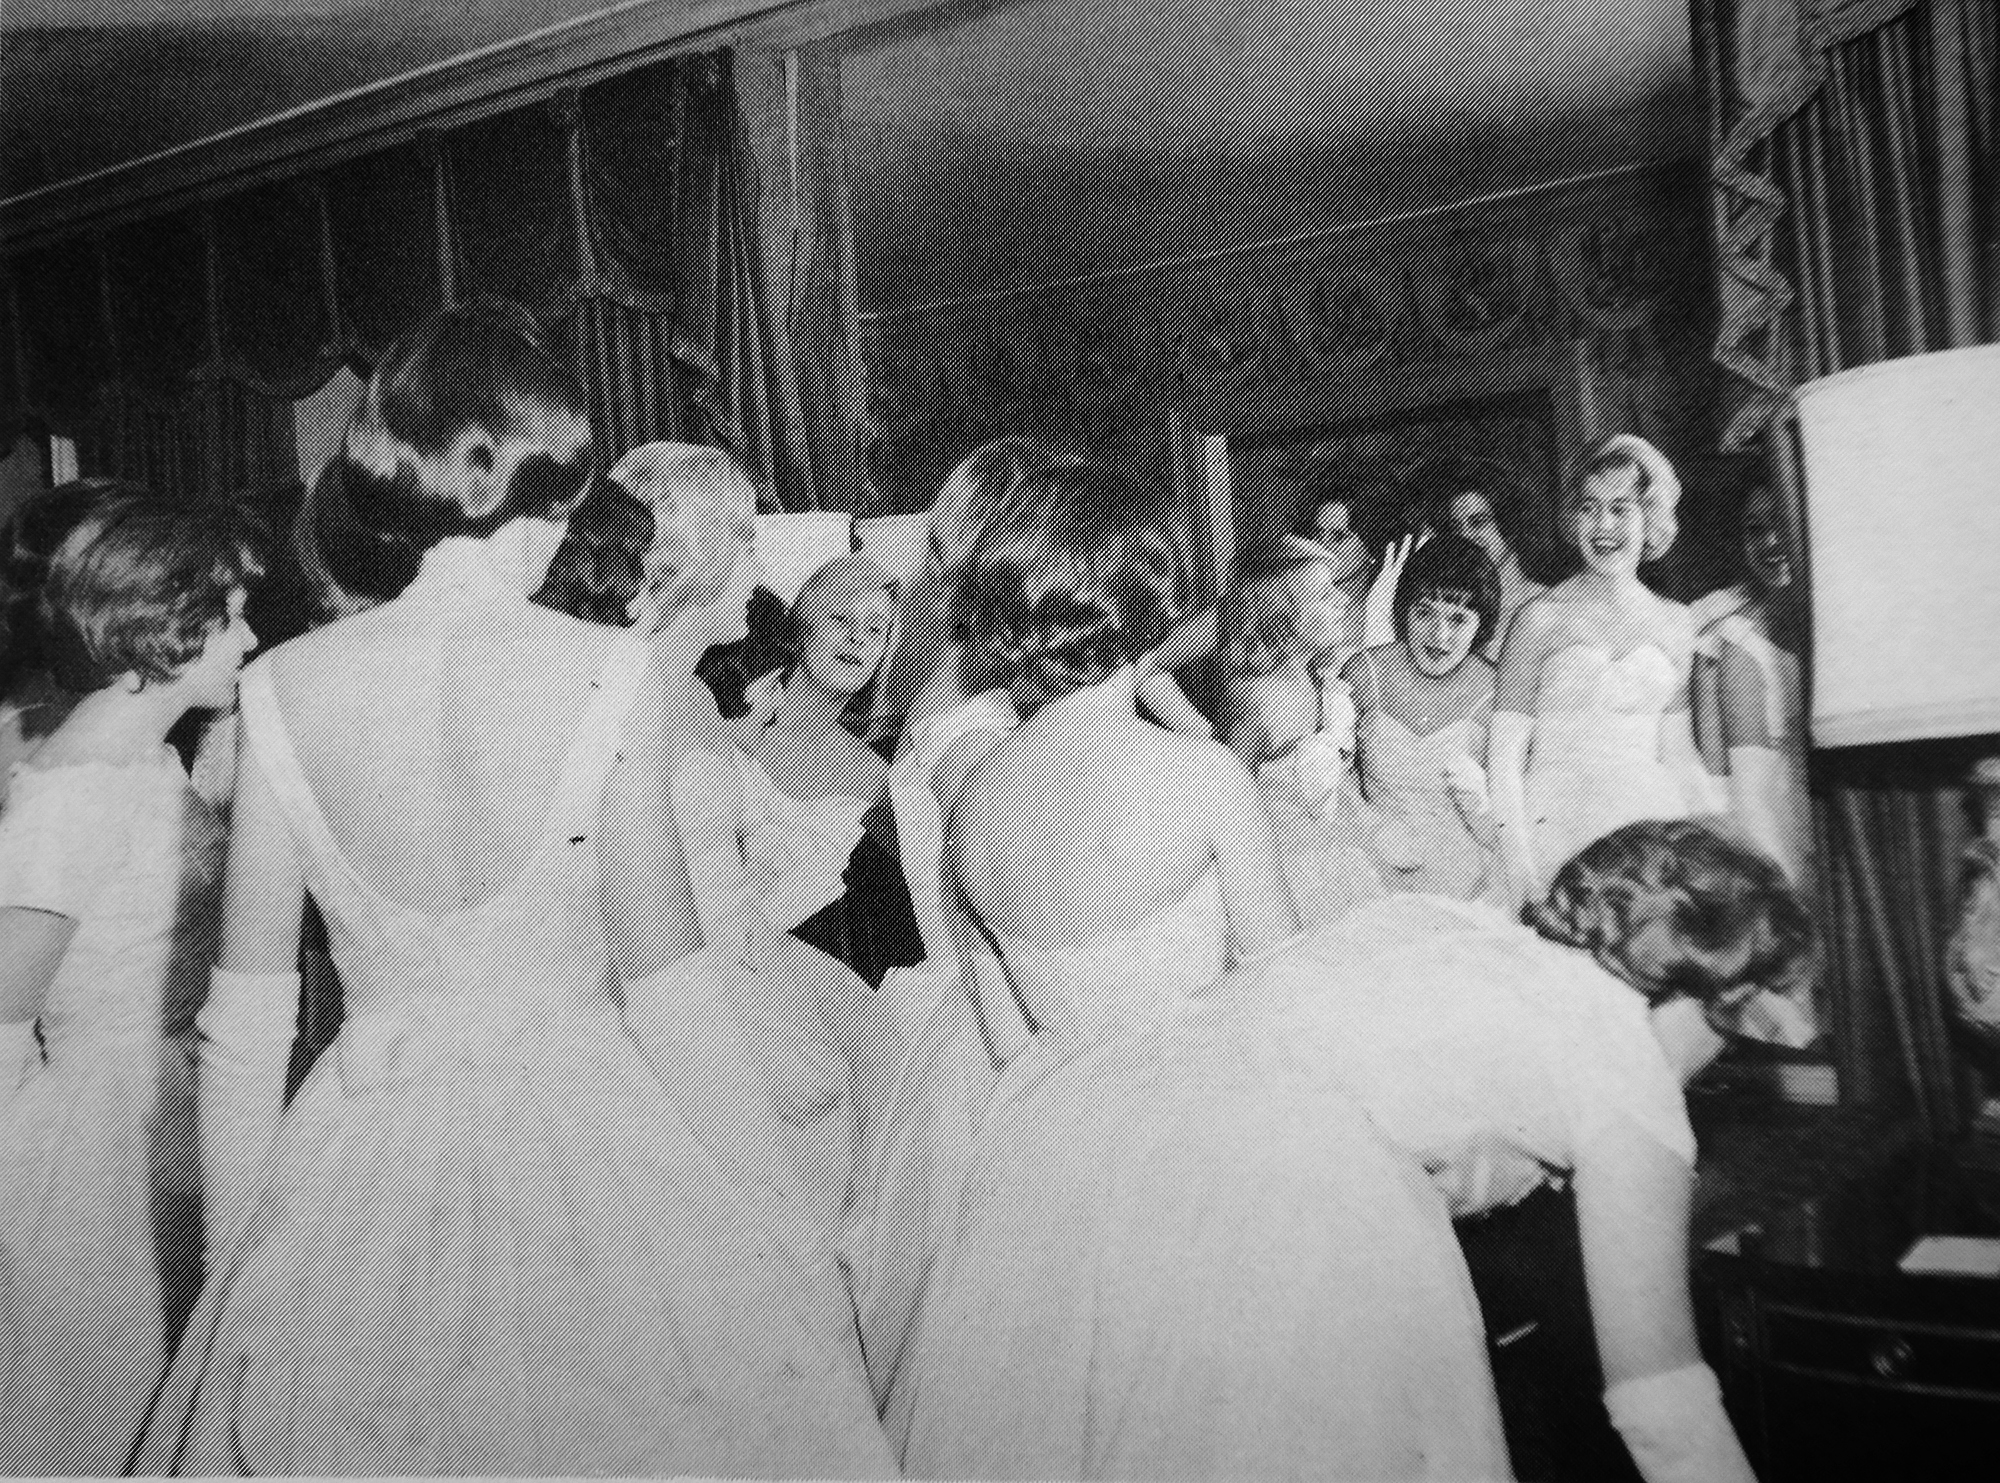 The Cinderella Ball, 1961. (Cinderella Ball Committee Records, MSS 1109, Detre Library & Archives, Heinz History Center)